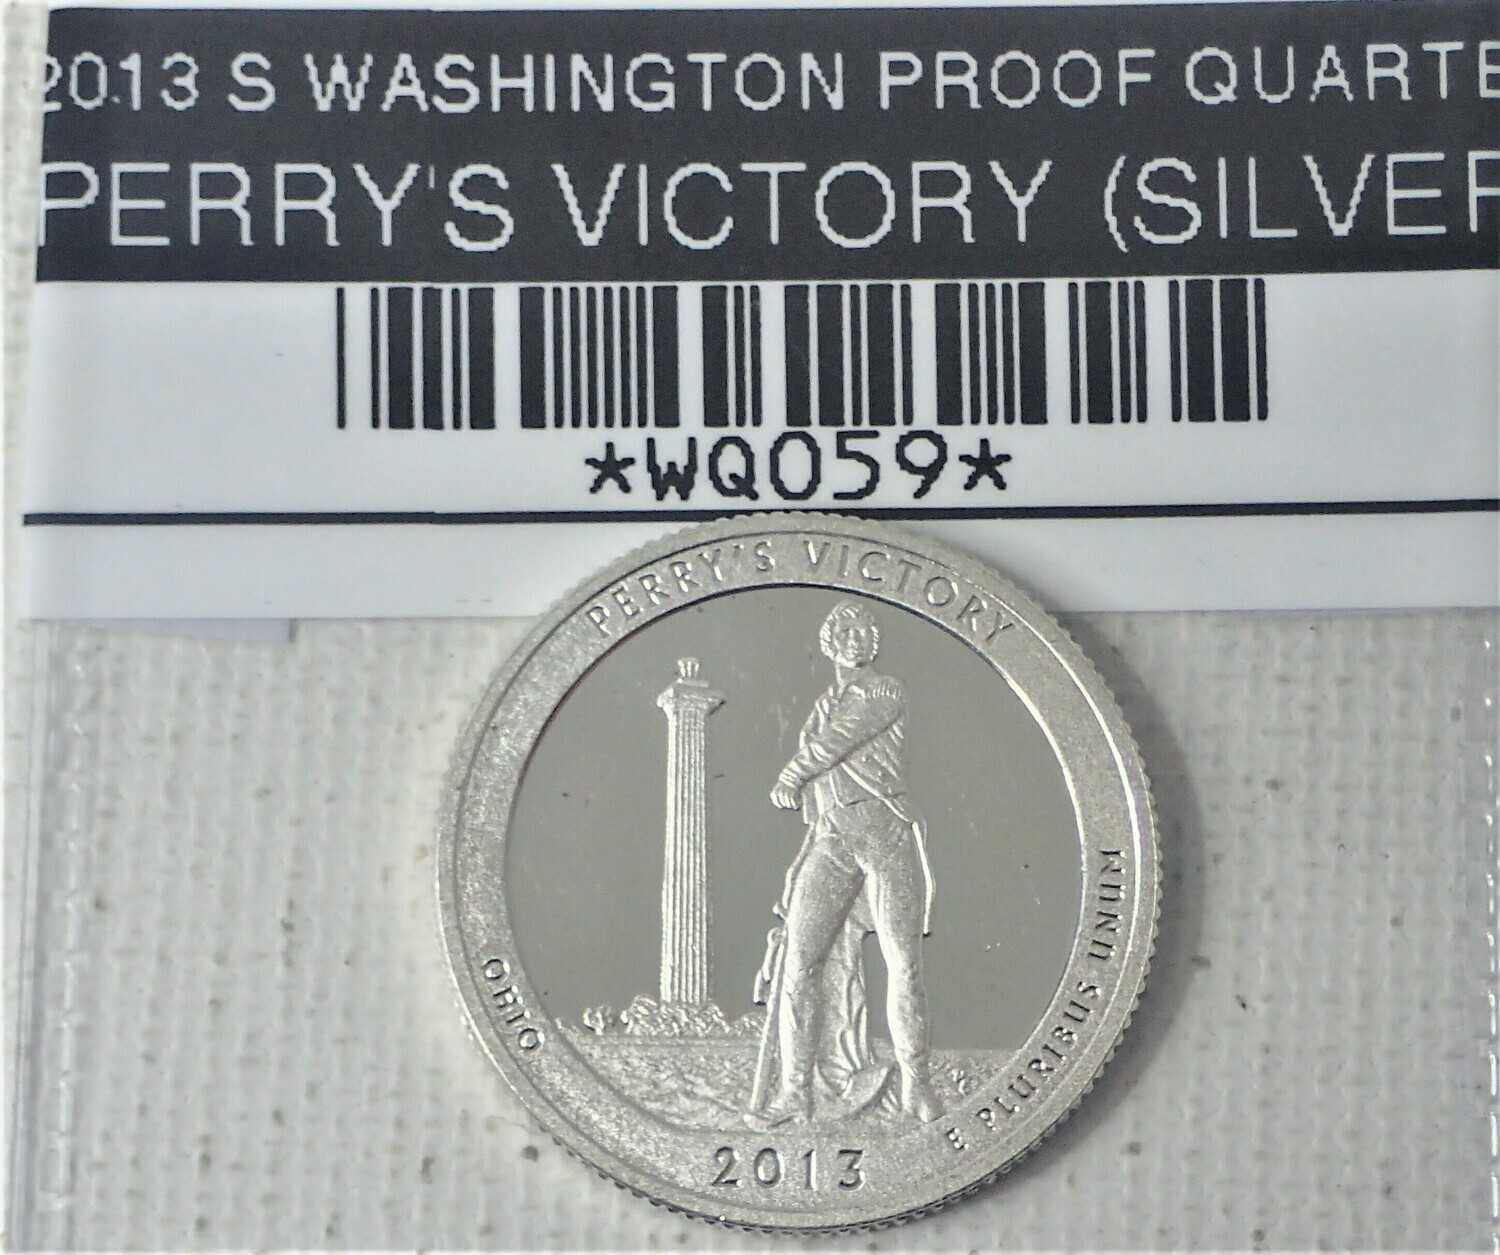 2013 S WASHINGTON PROOF QUARTER (SILVER) PERRY'S VICTORY WQ059